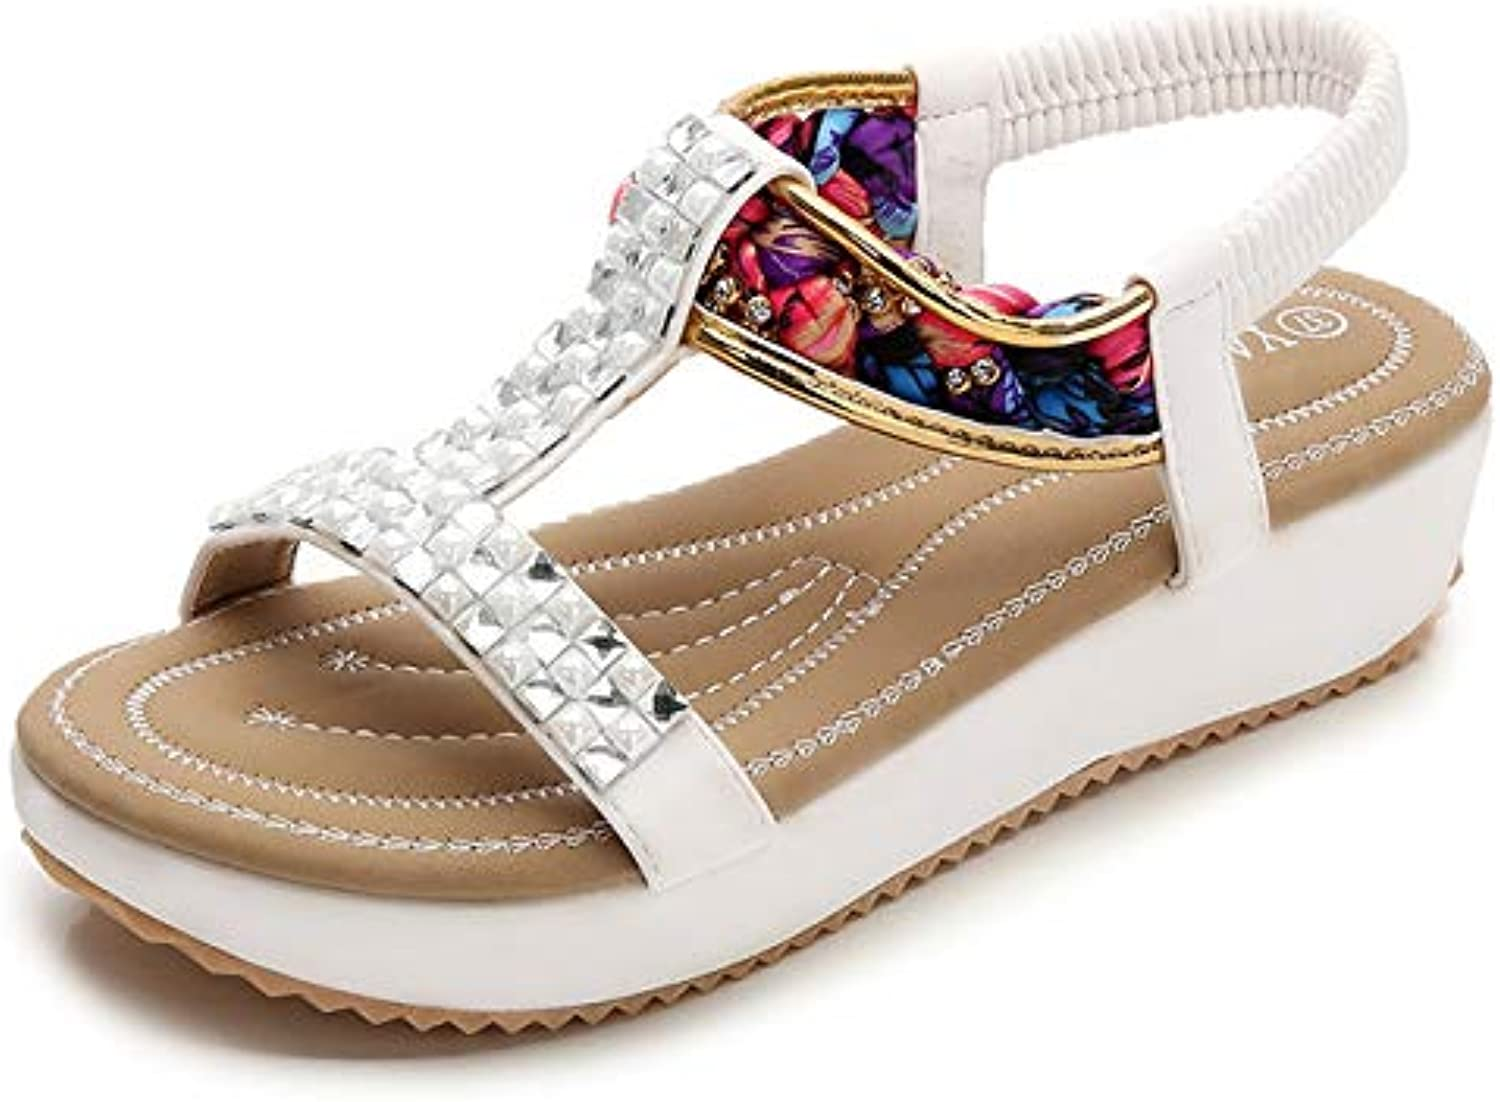 Women's Wedge Sandals, Summer shoes, Large Size Bohemian Platform Flats Sandals,Suitable for Home, Beach, Daily Wear, Leisure, Vacation, Travel, Casual